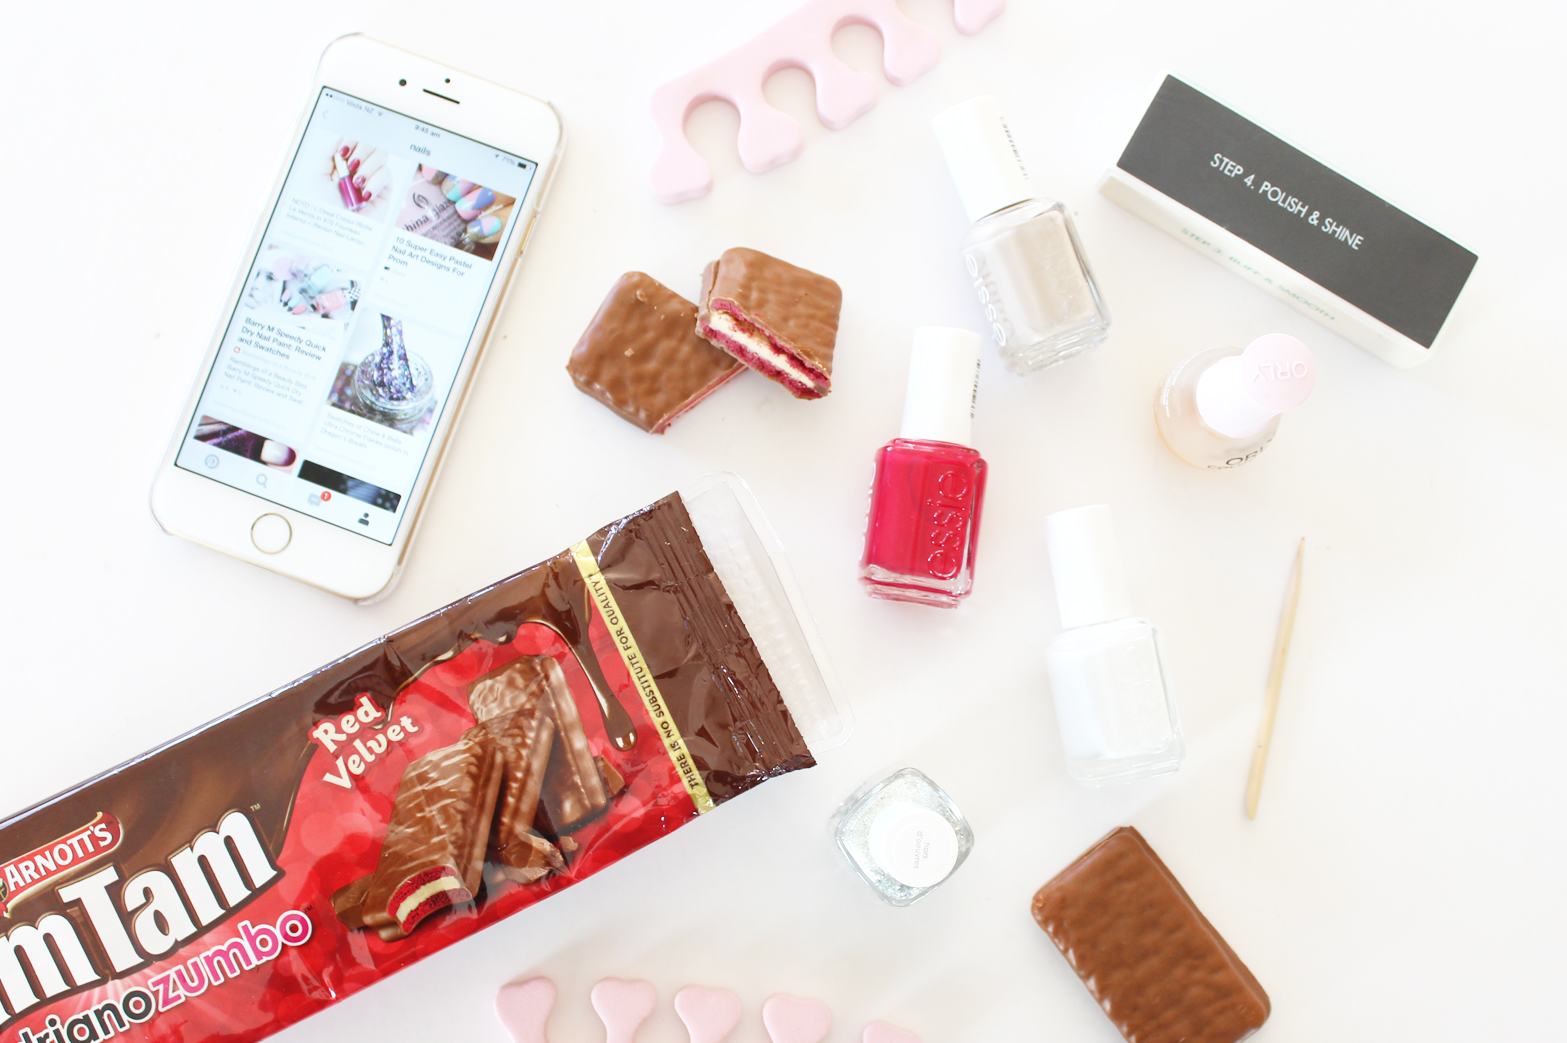 PAMPER NIGHT ESSENTIALS | With Tim Tam Moments - CassandraMyee